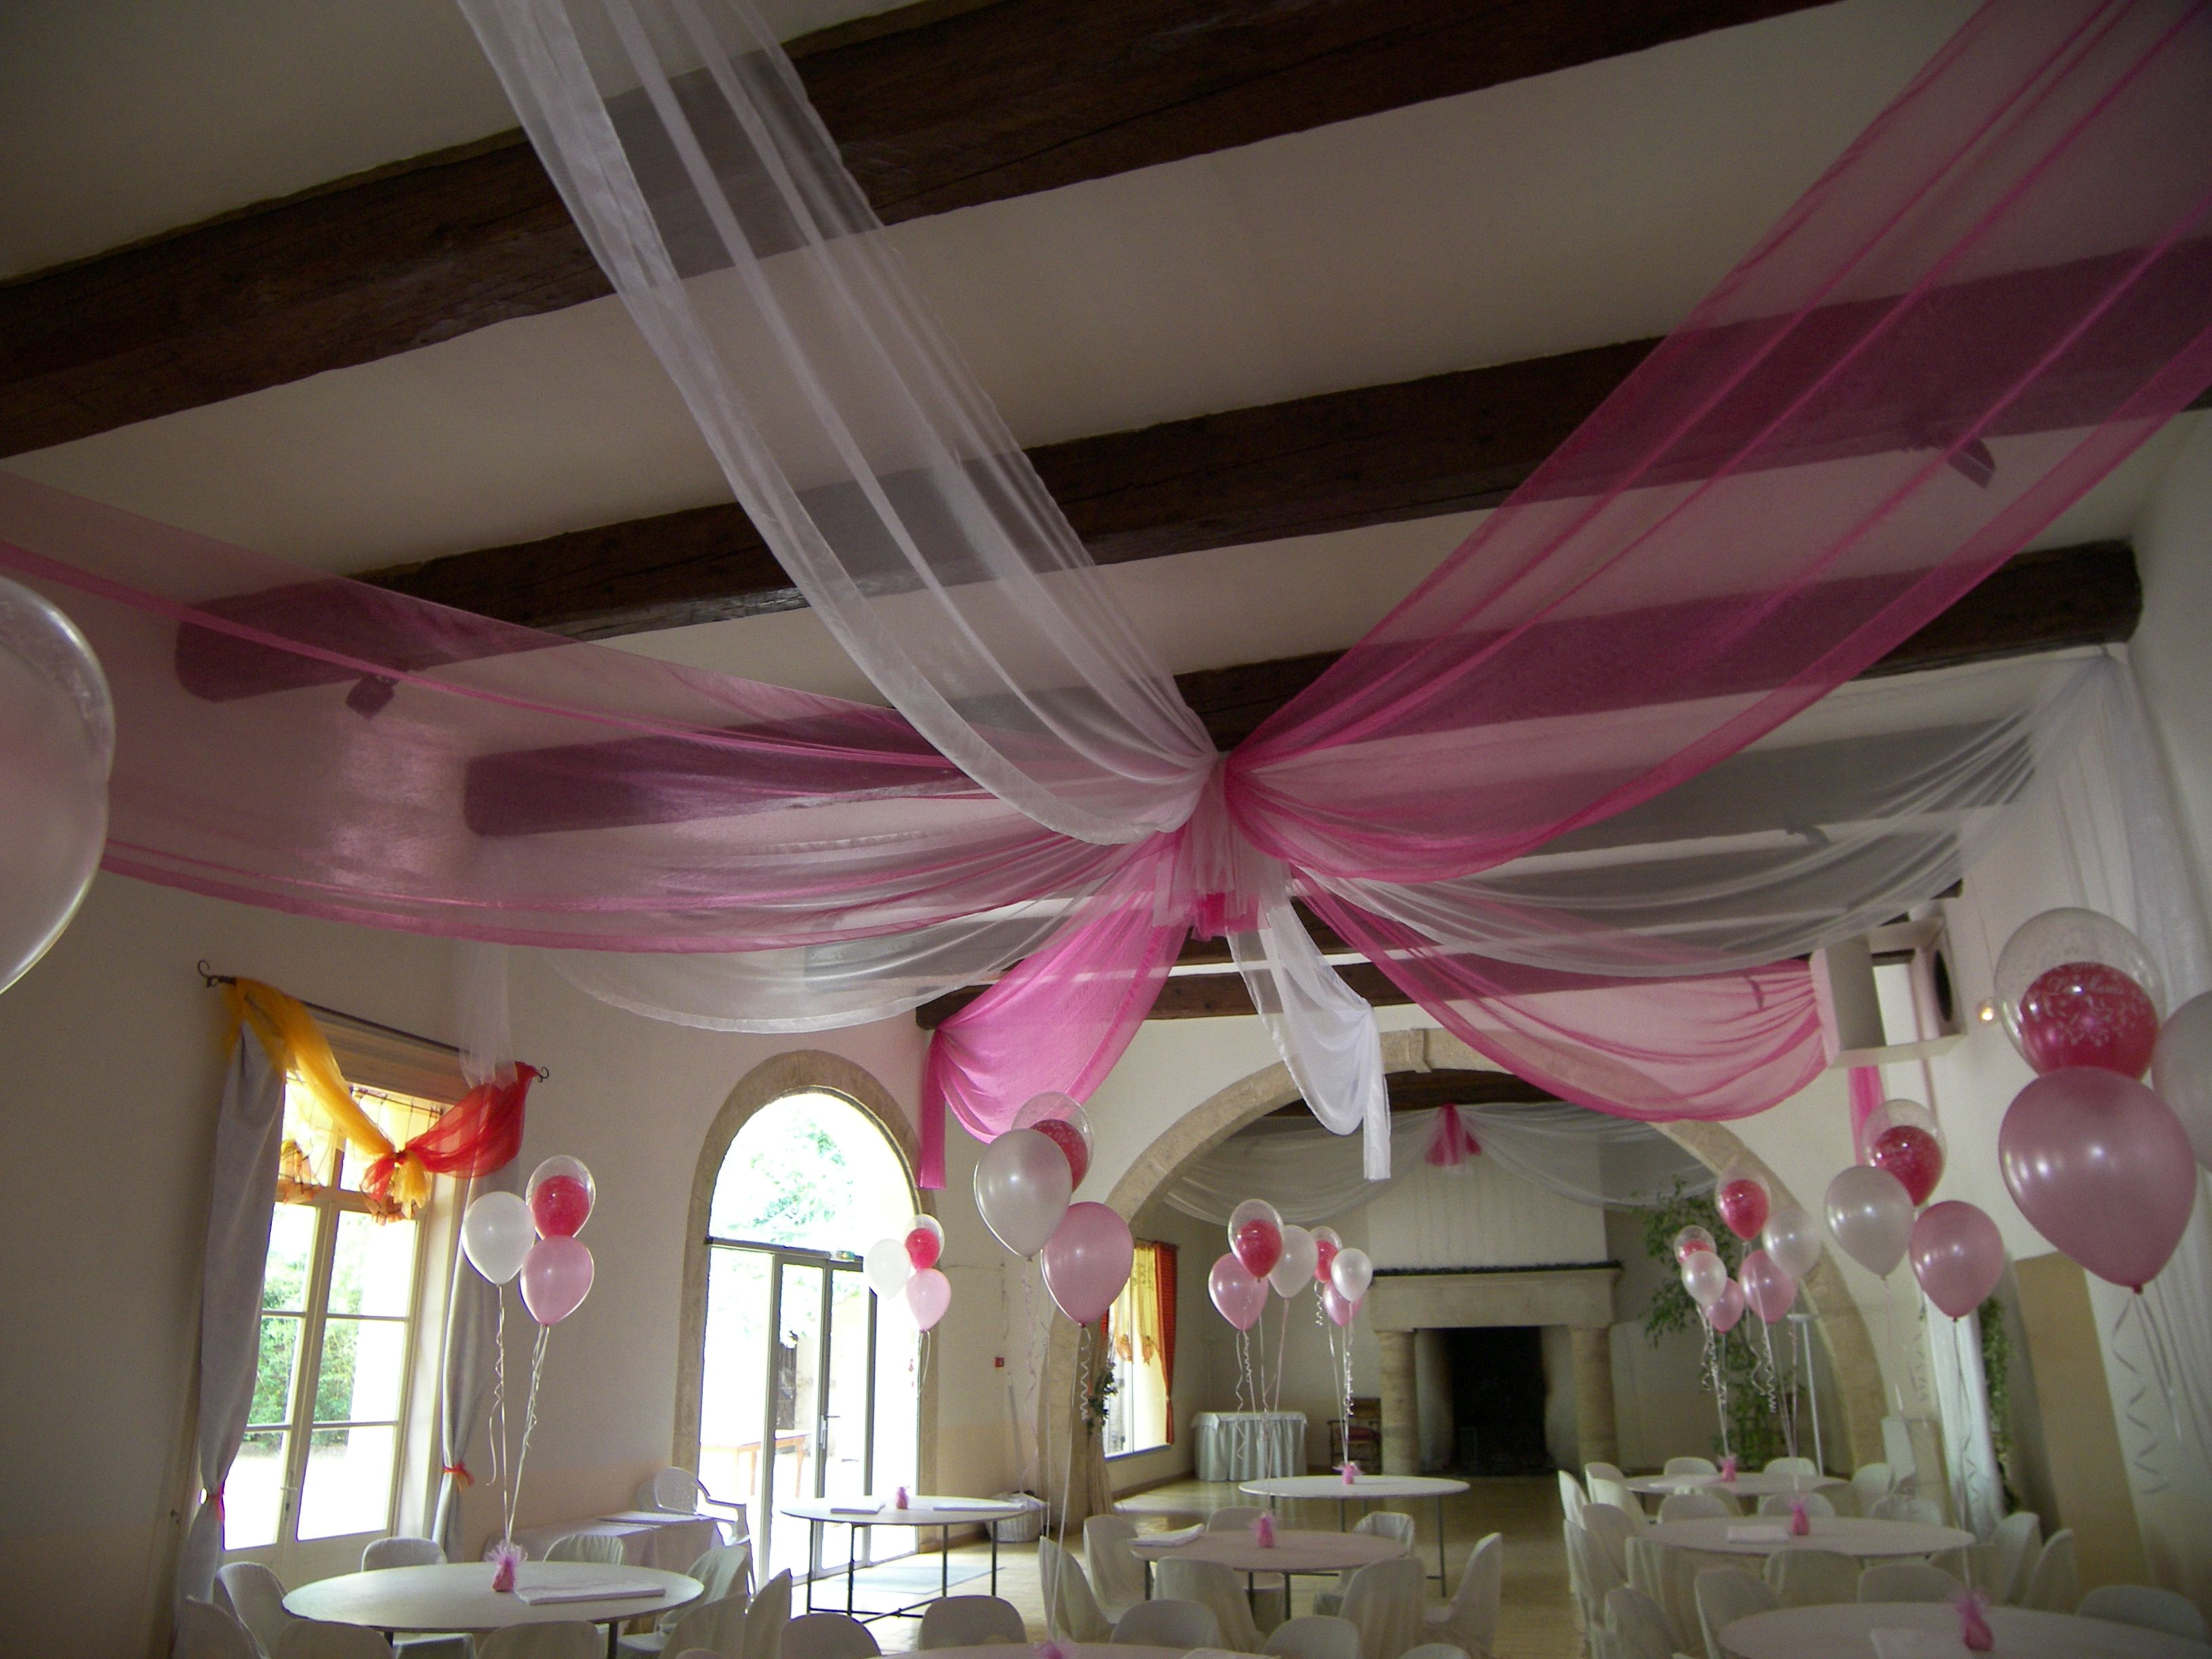 1000 images about fanion chemin de table plafond on pinterest tassels romantic and mariage - Drap Plafond Mariage